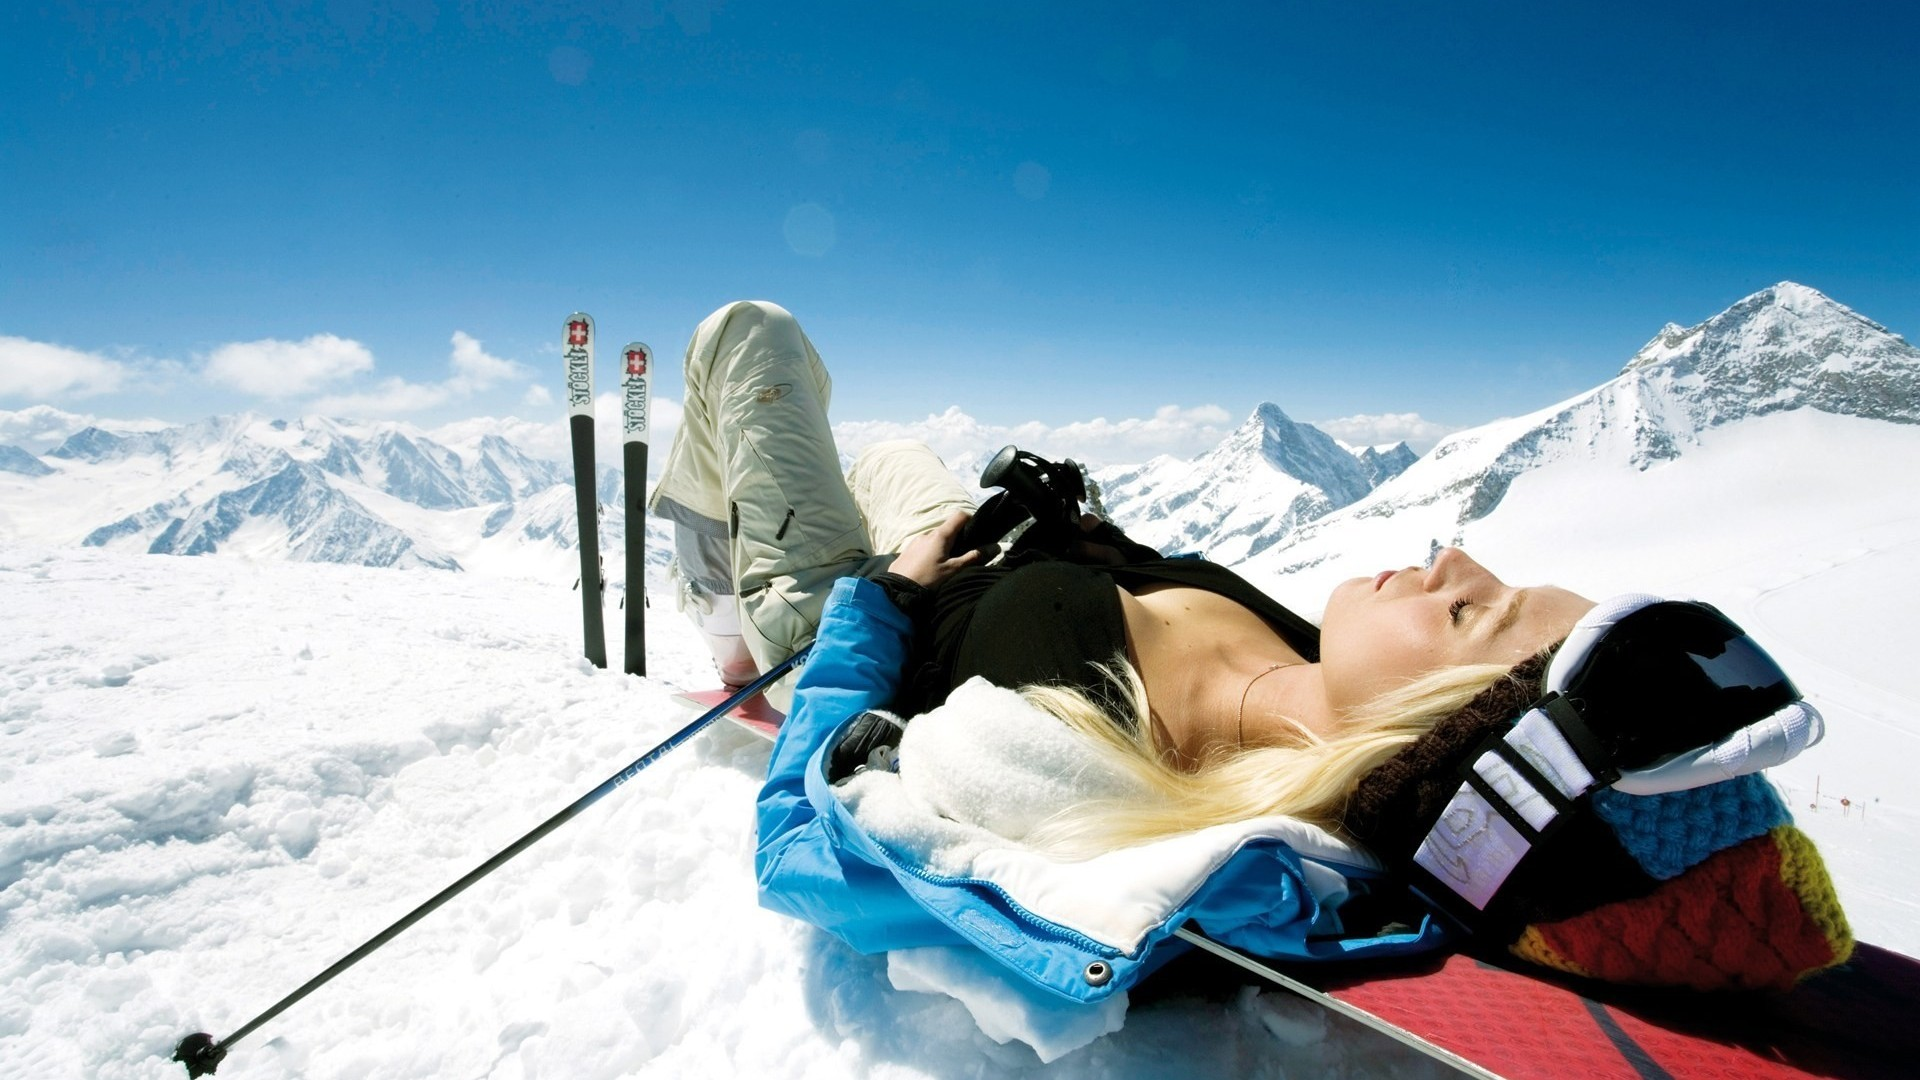 Skiing Wallpaper Skiing Girl Hd Wallpaper 53337 1920x1080px